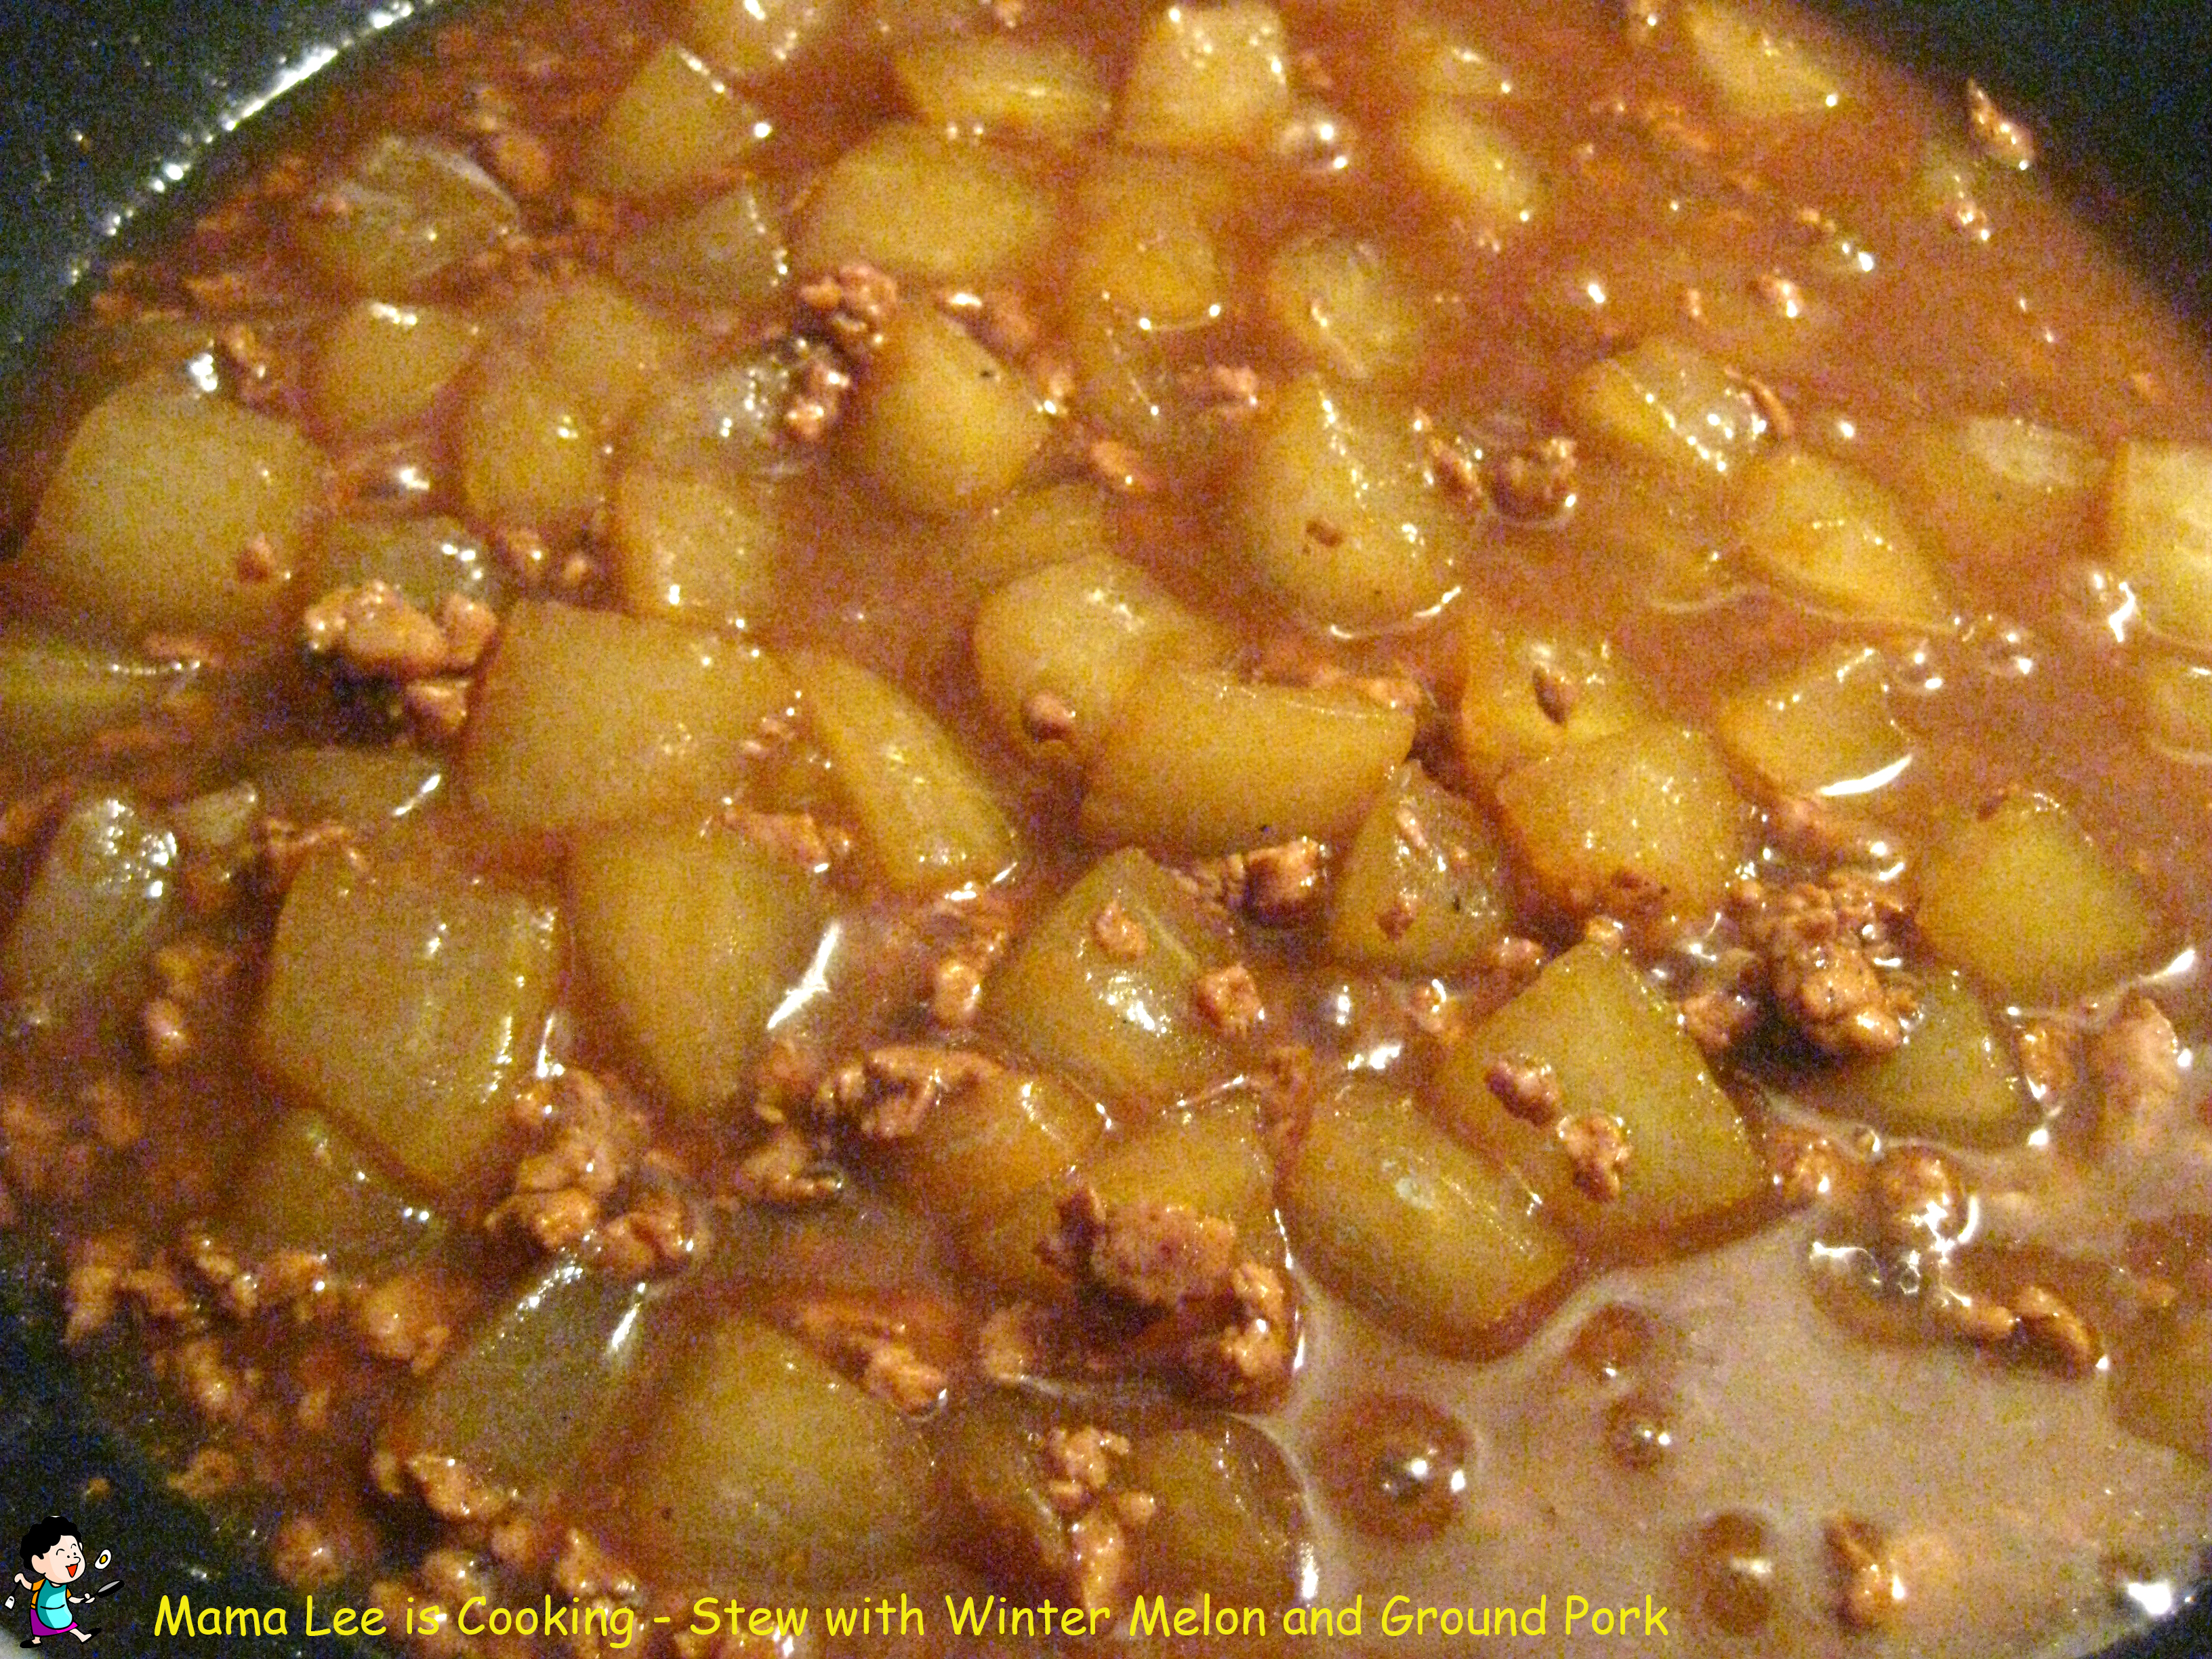 Stew with Winter Melon and Ground Pork